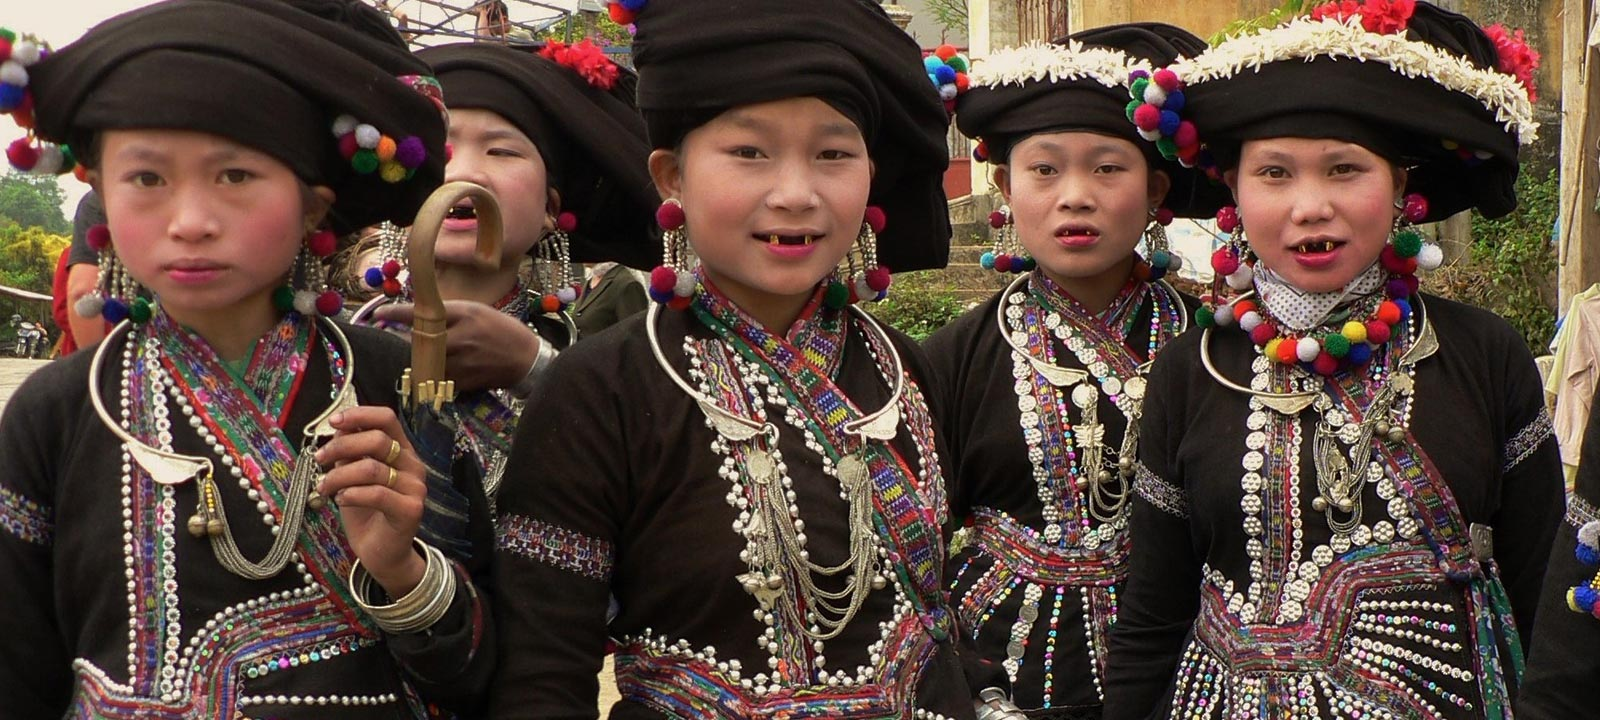 Vietnamese children in North West Vietnam